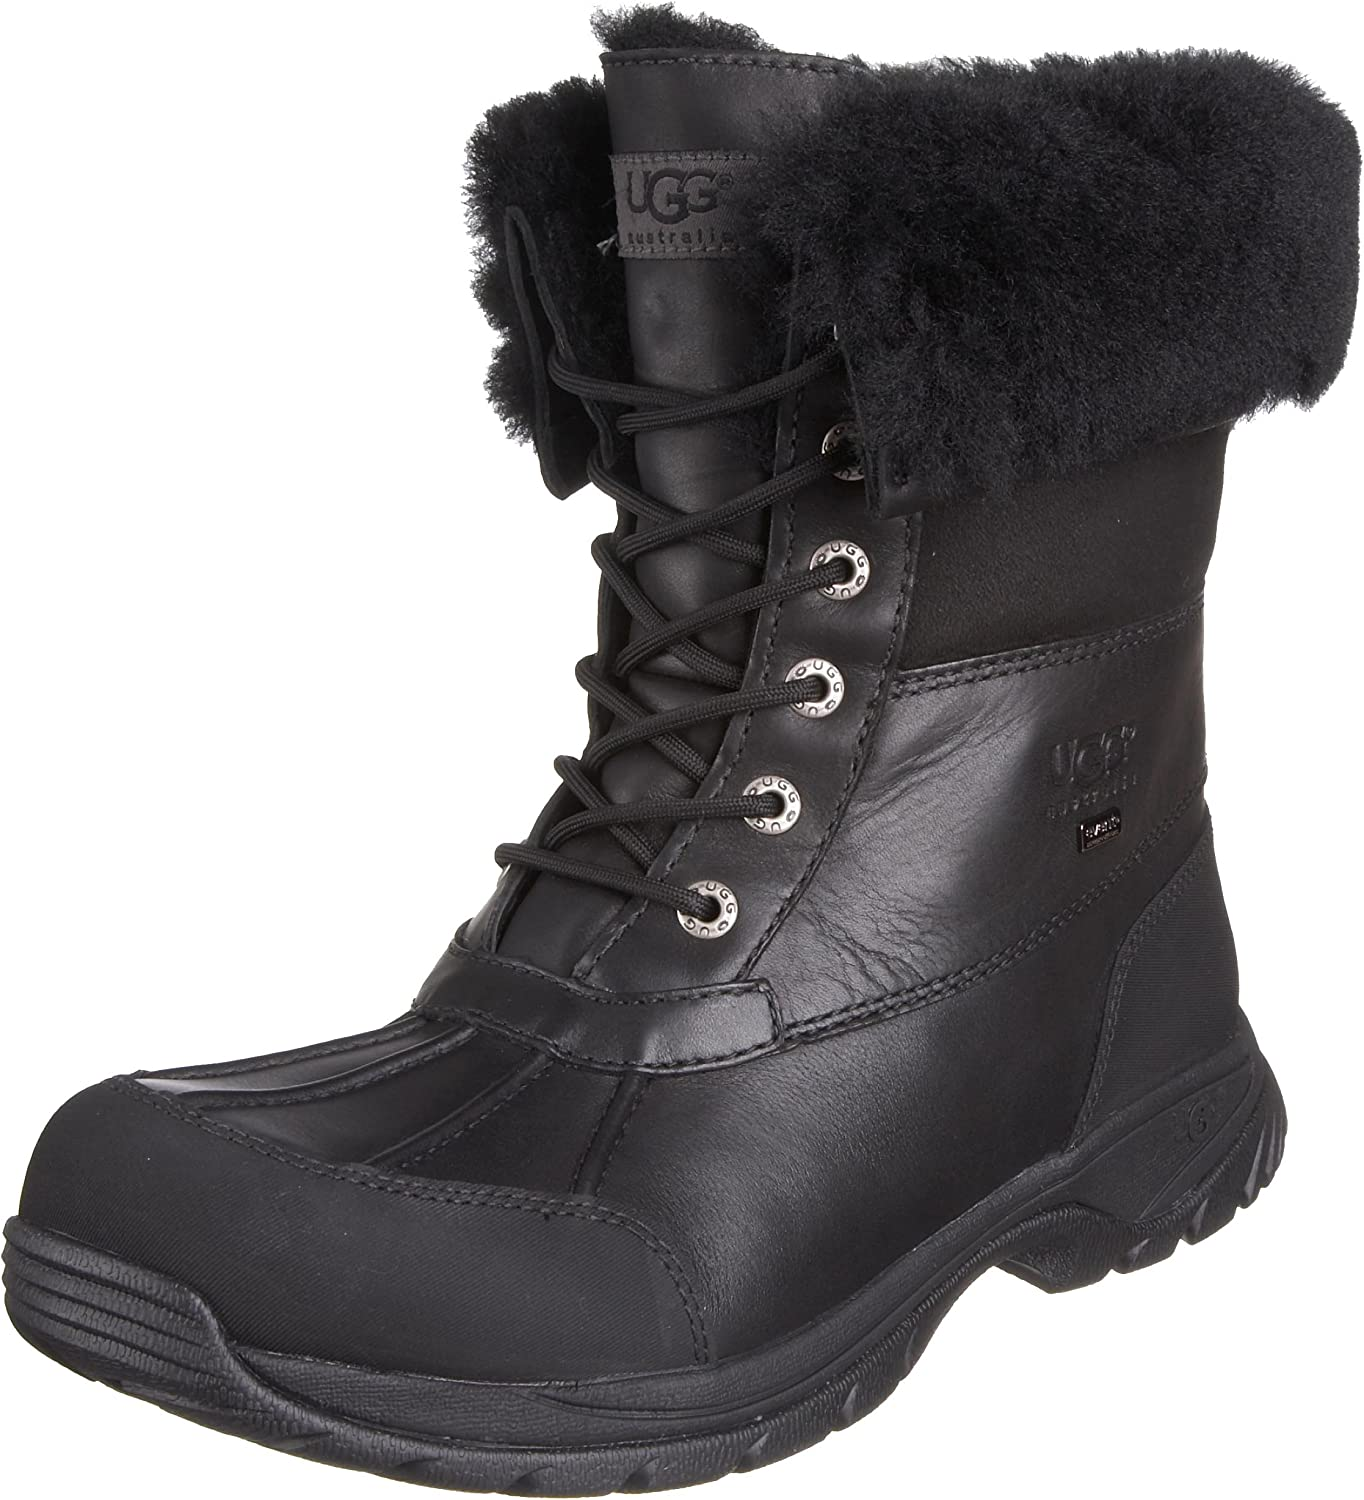 mens black leather winter boots